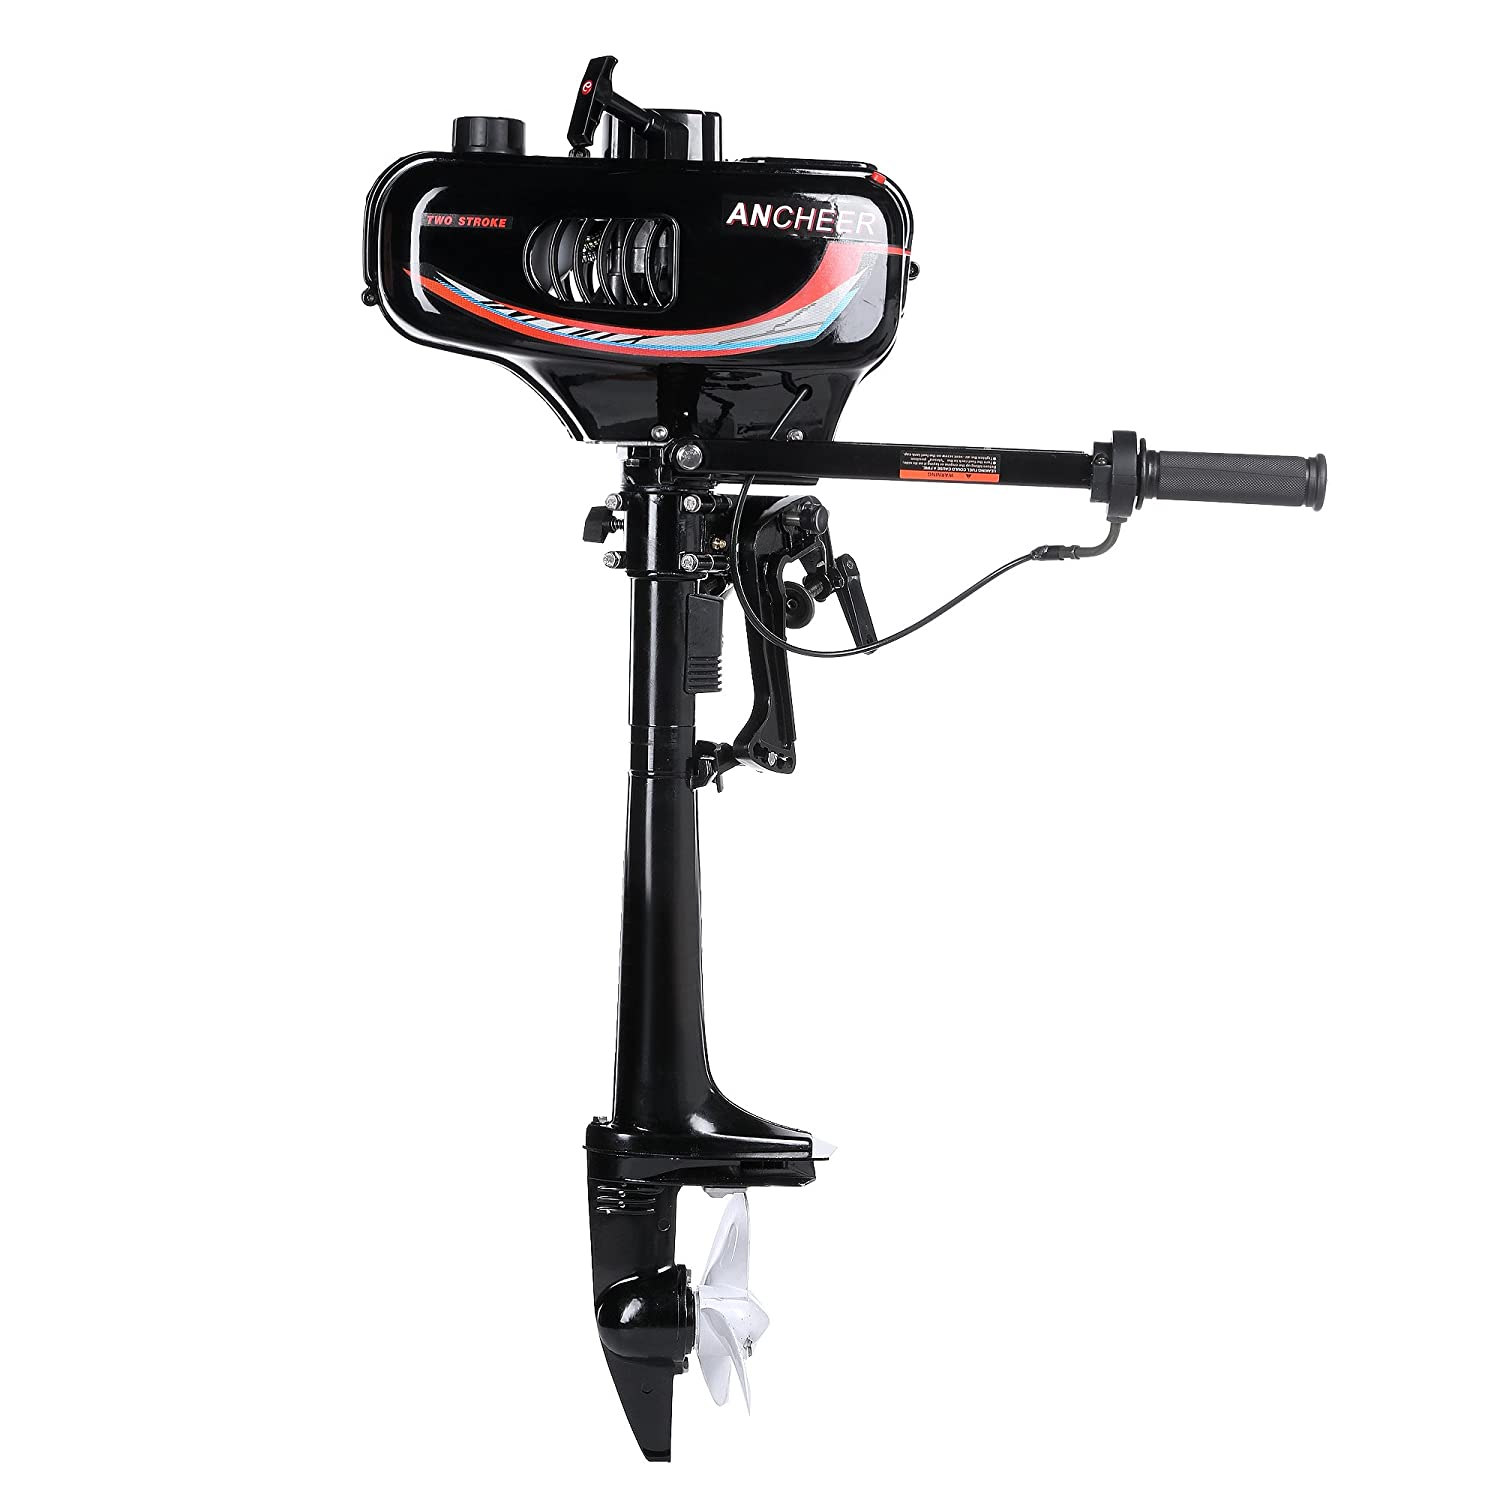 ANCHEER 3 5 HP 2-Stroke Ship Outboard Motor Inflatable